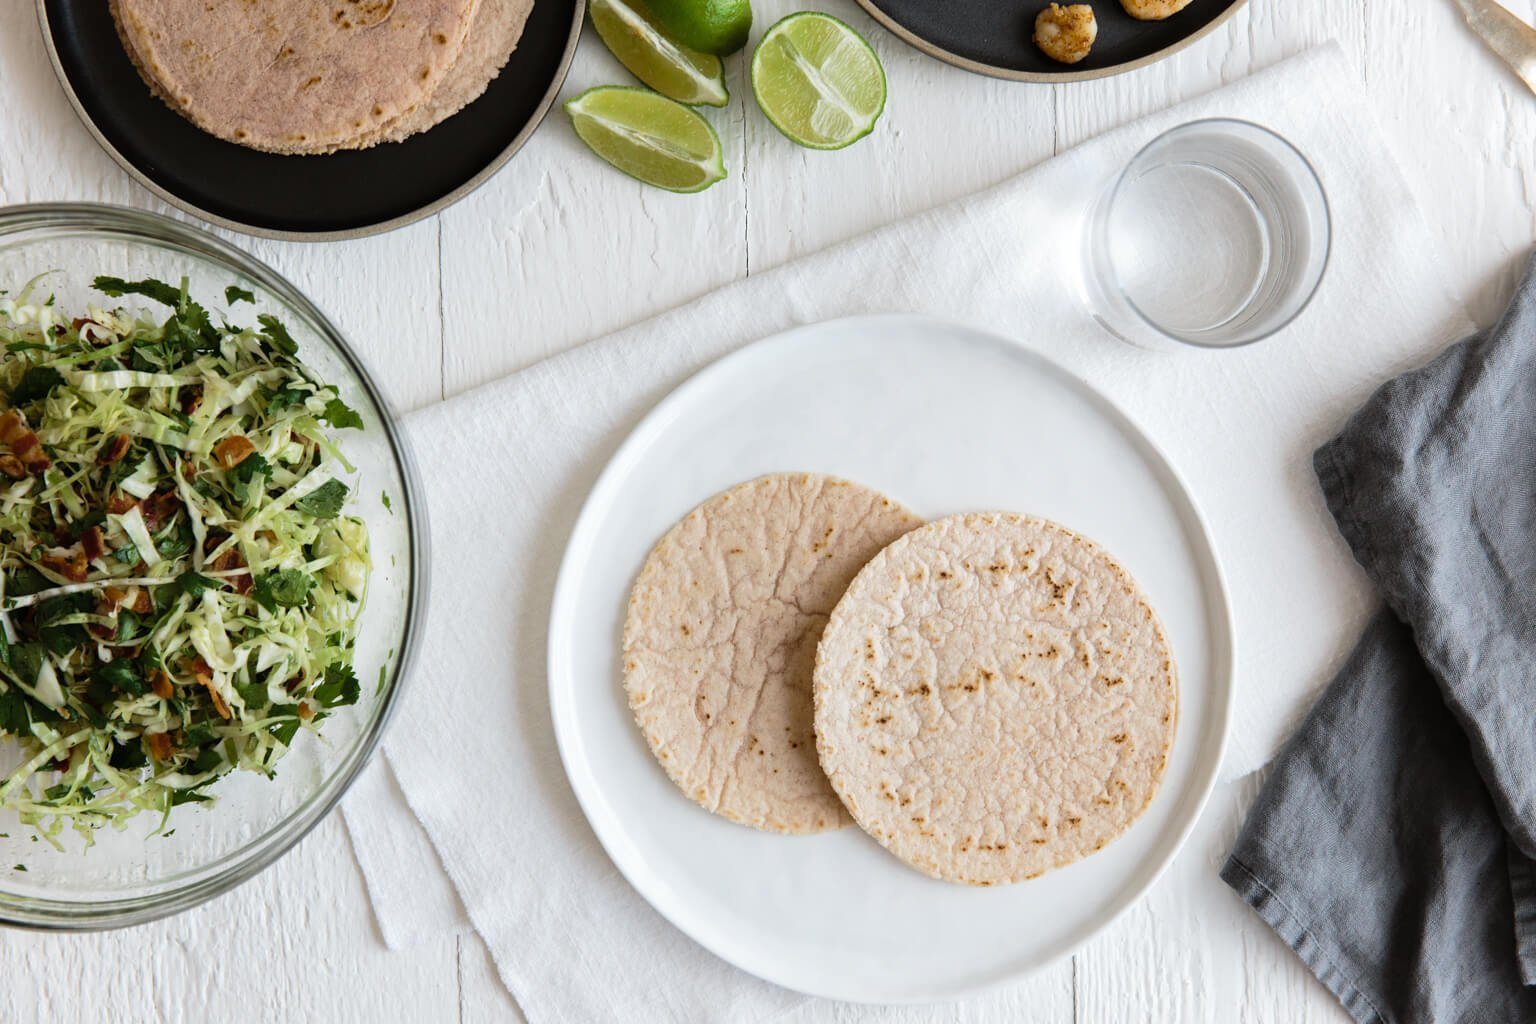 How to make cassava flour tortillas (plus an easy step-by-step video